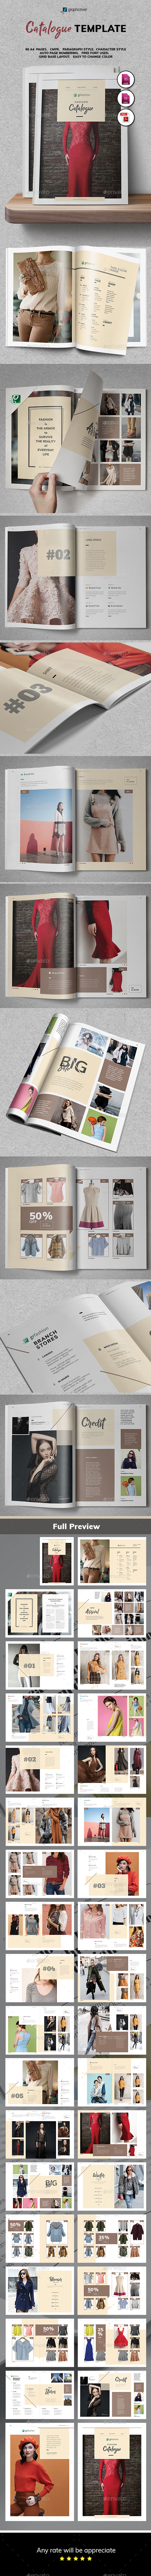 Catalogue / Lookbook Template - Magazines Print Templates